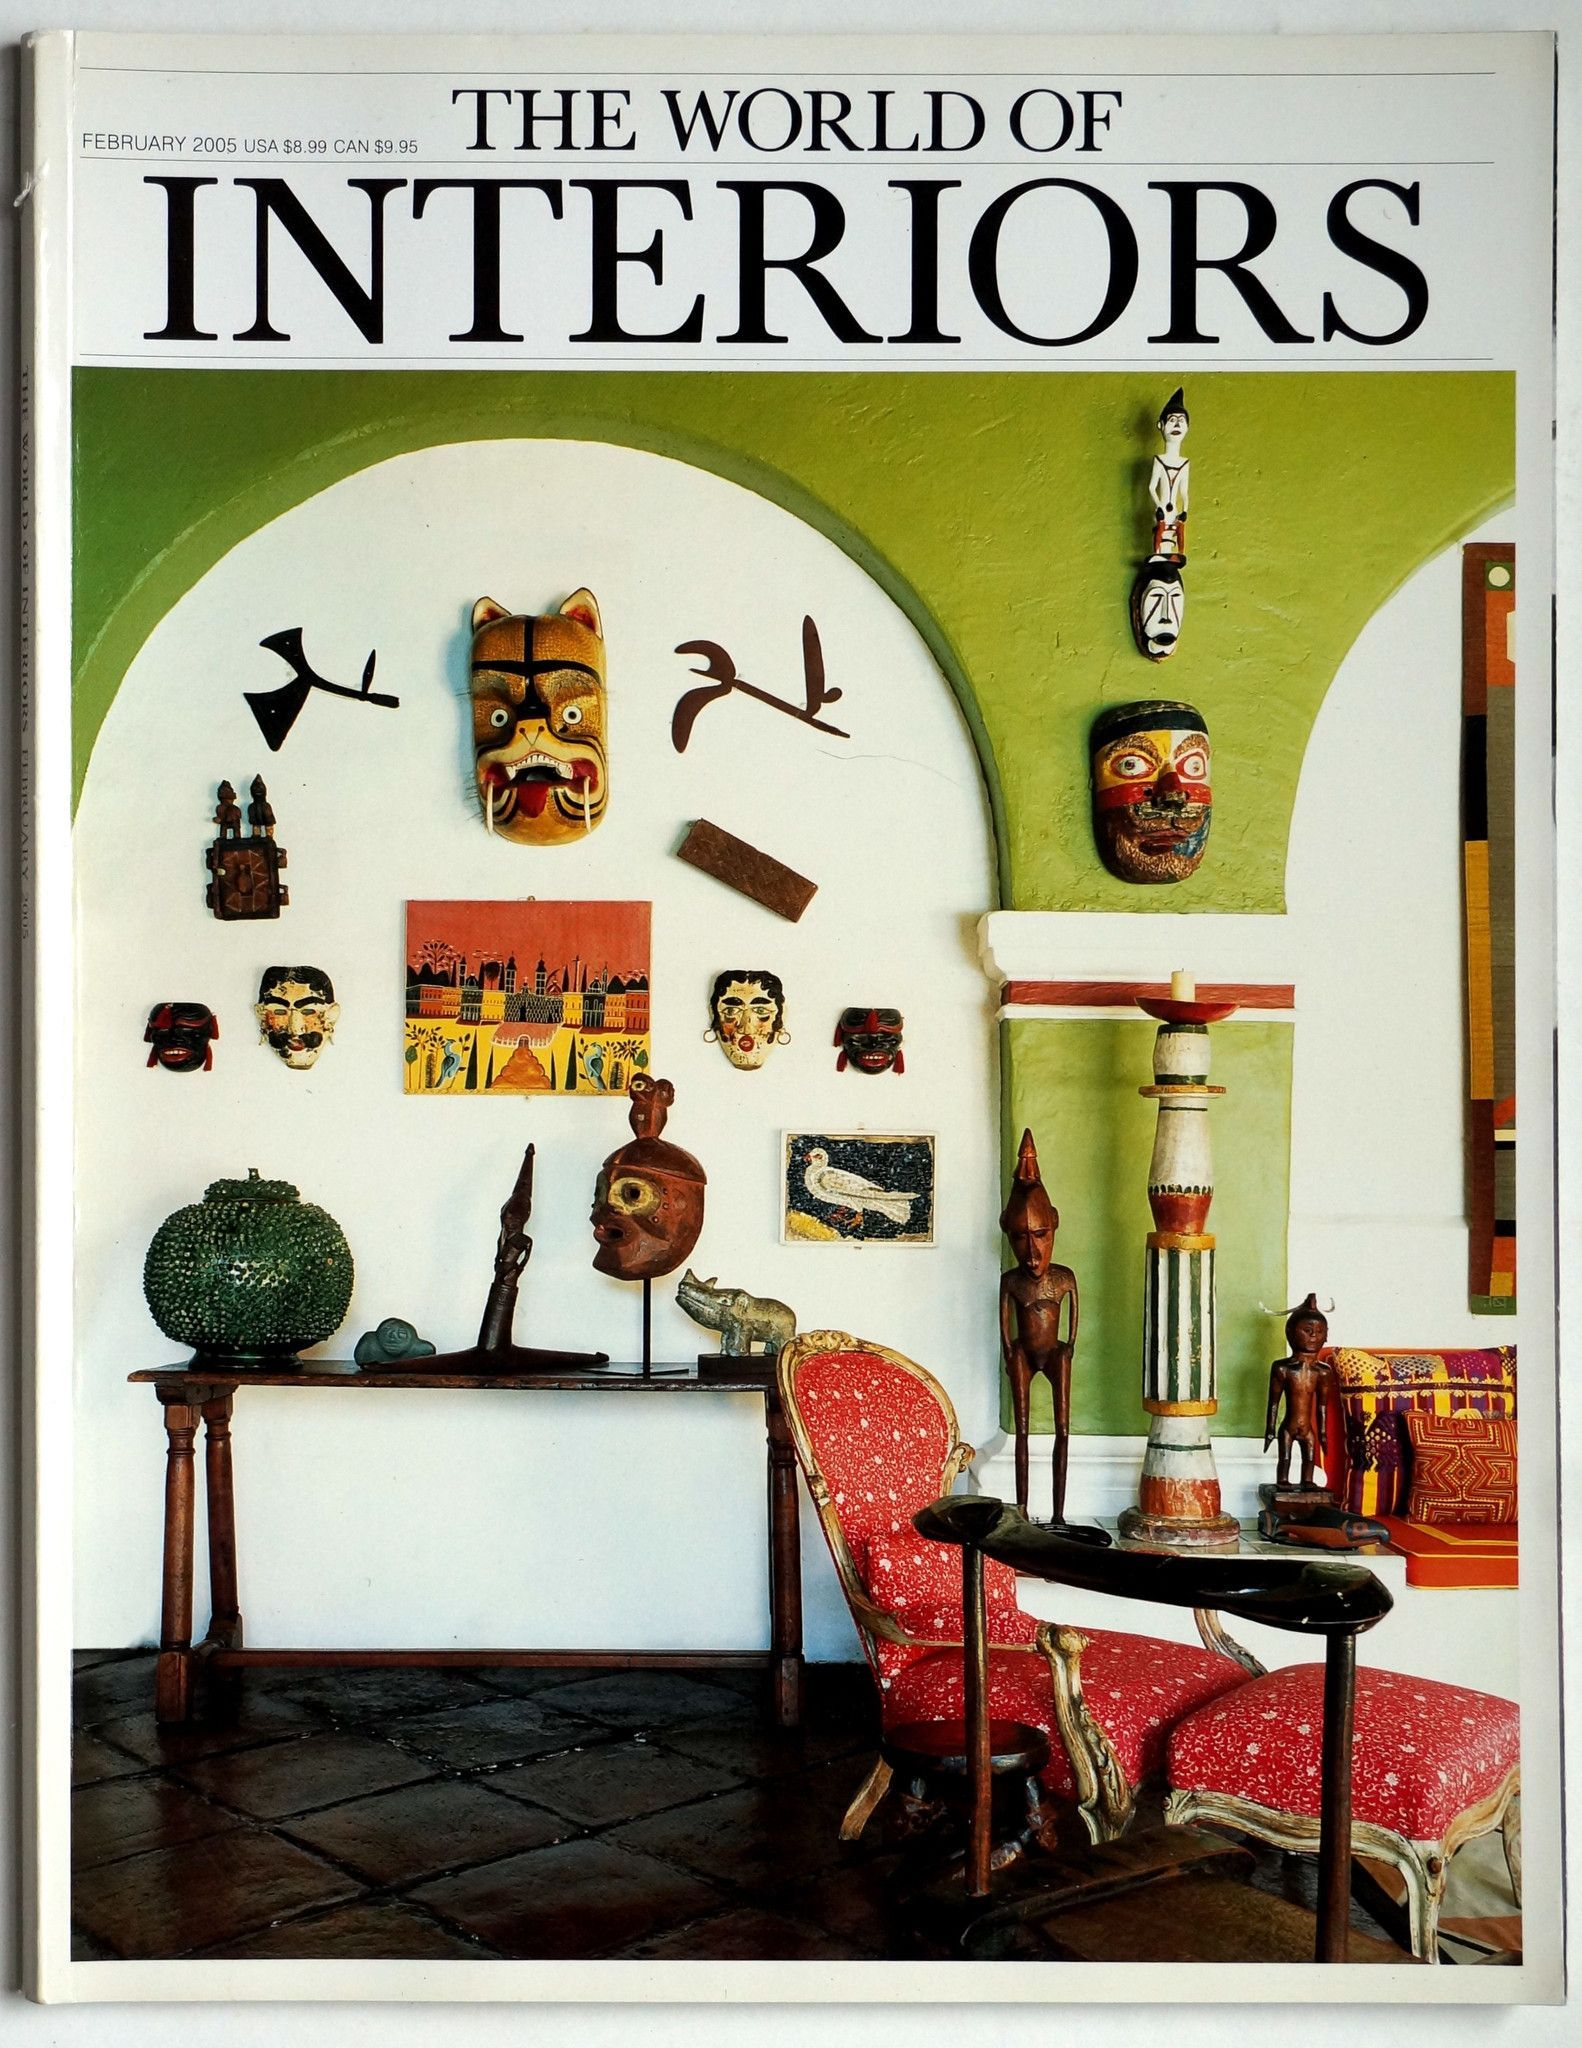 The World of Interiors February 2005